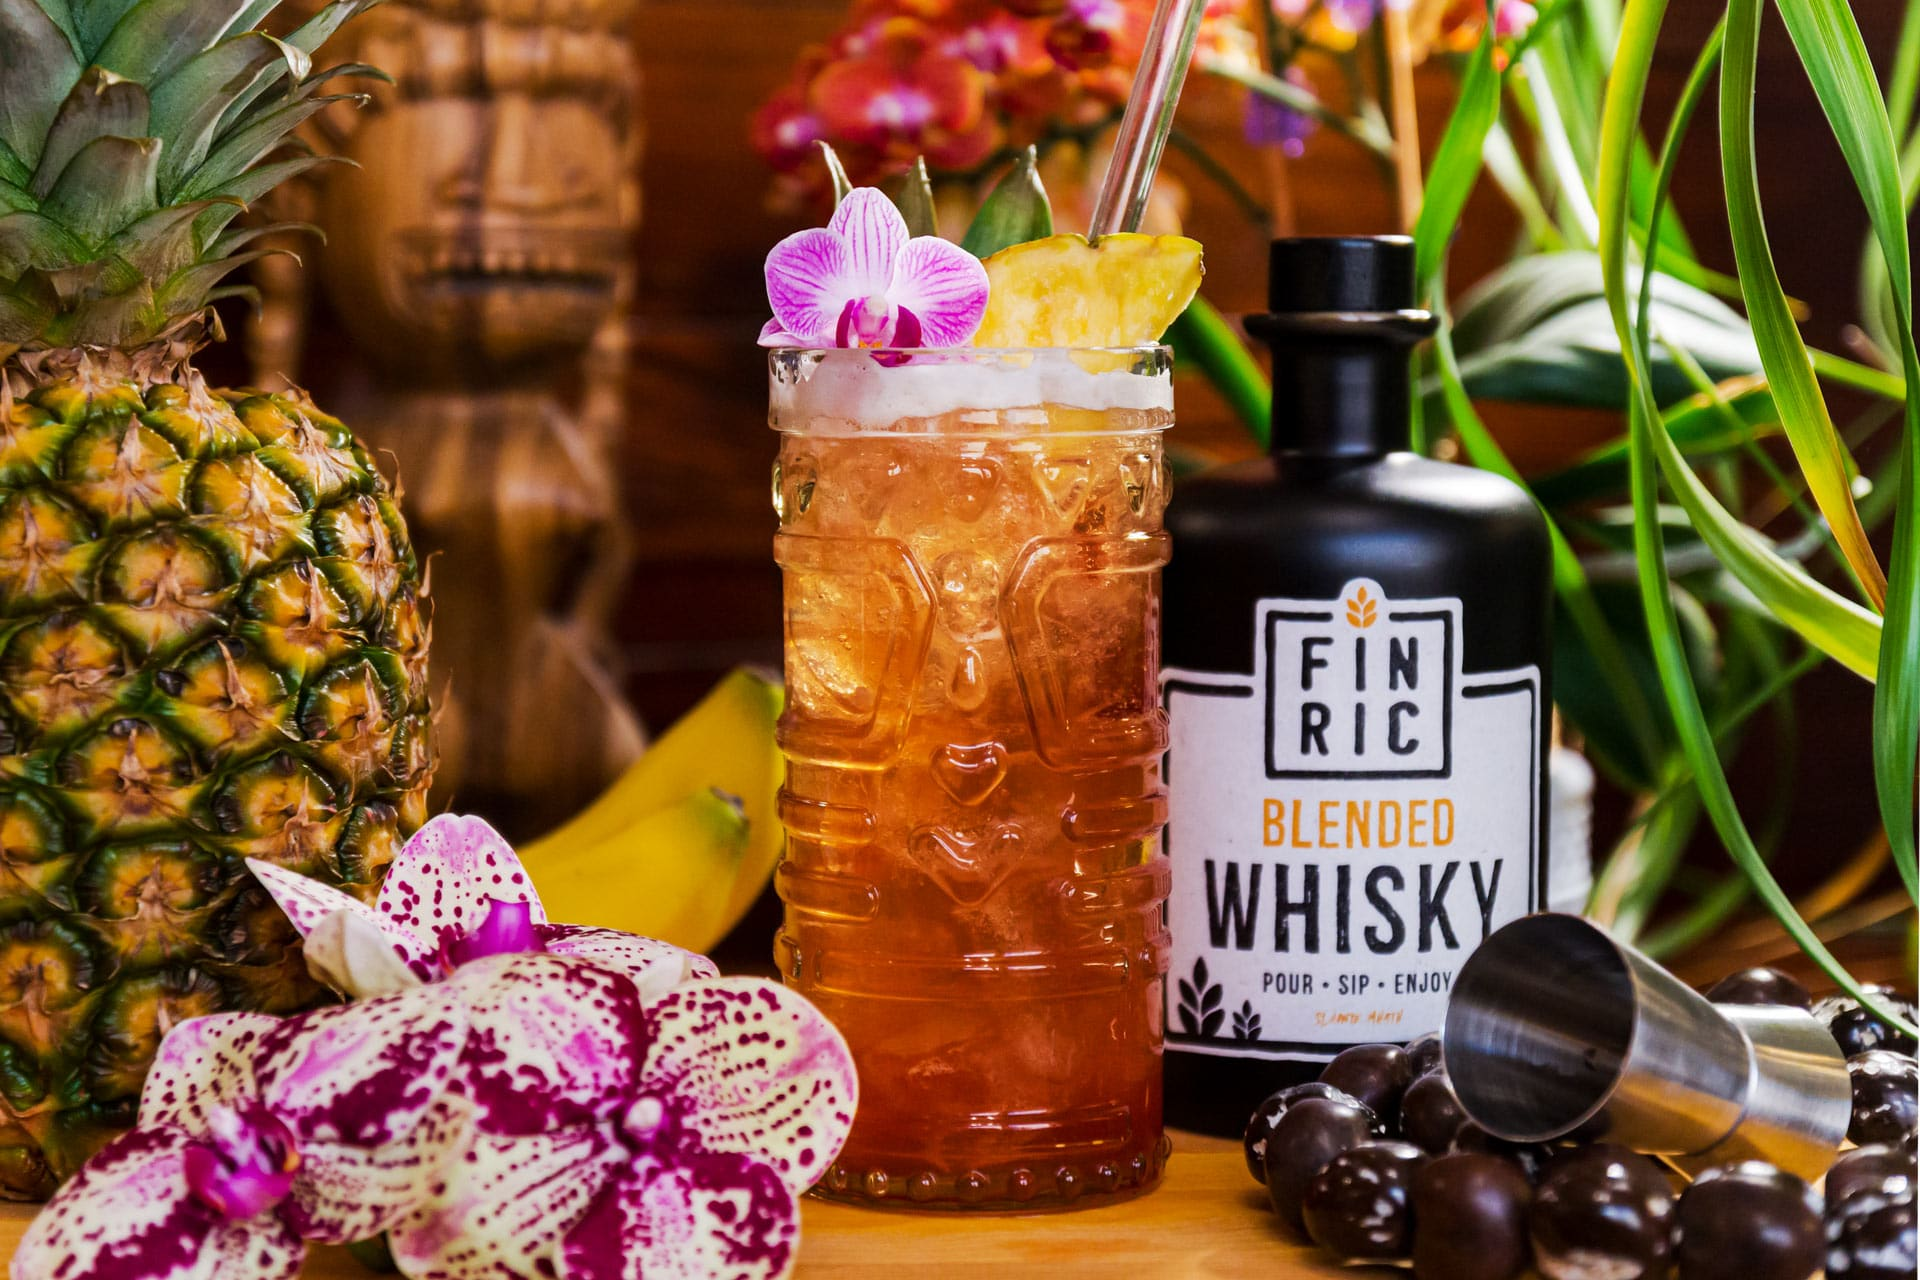 FINRIC Tiki - Whisky Cocktail - Der stylische Sommerdrink - Tiki Cocktail